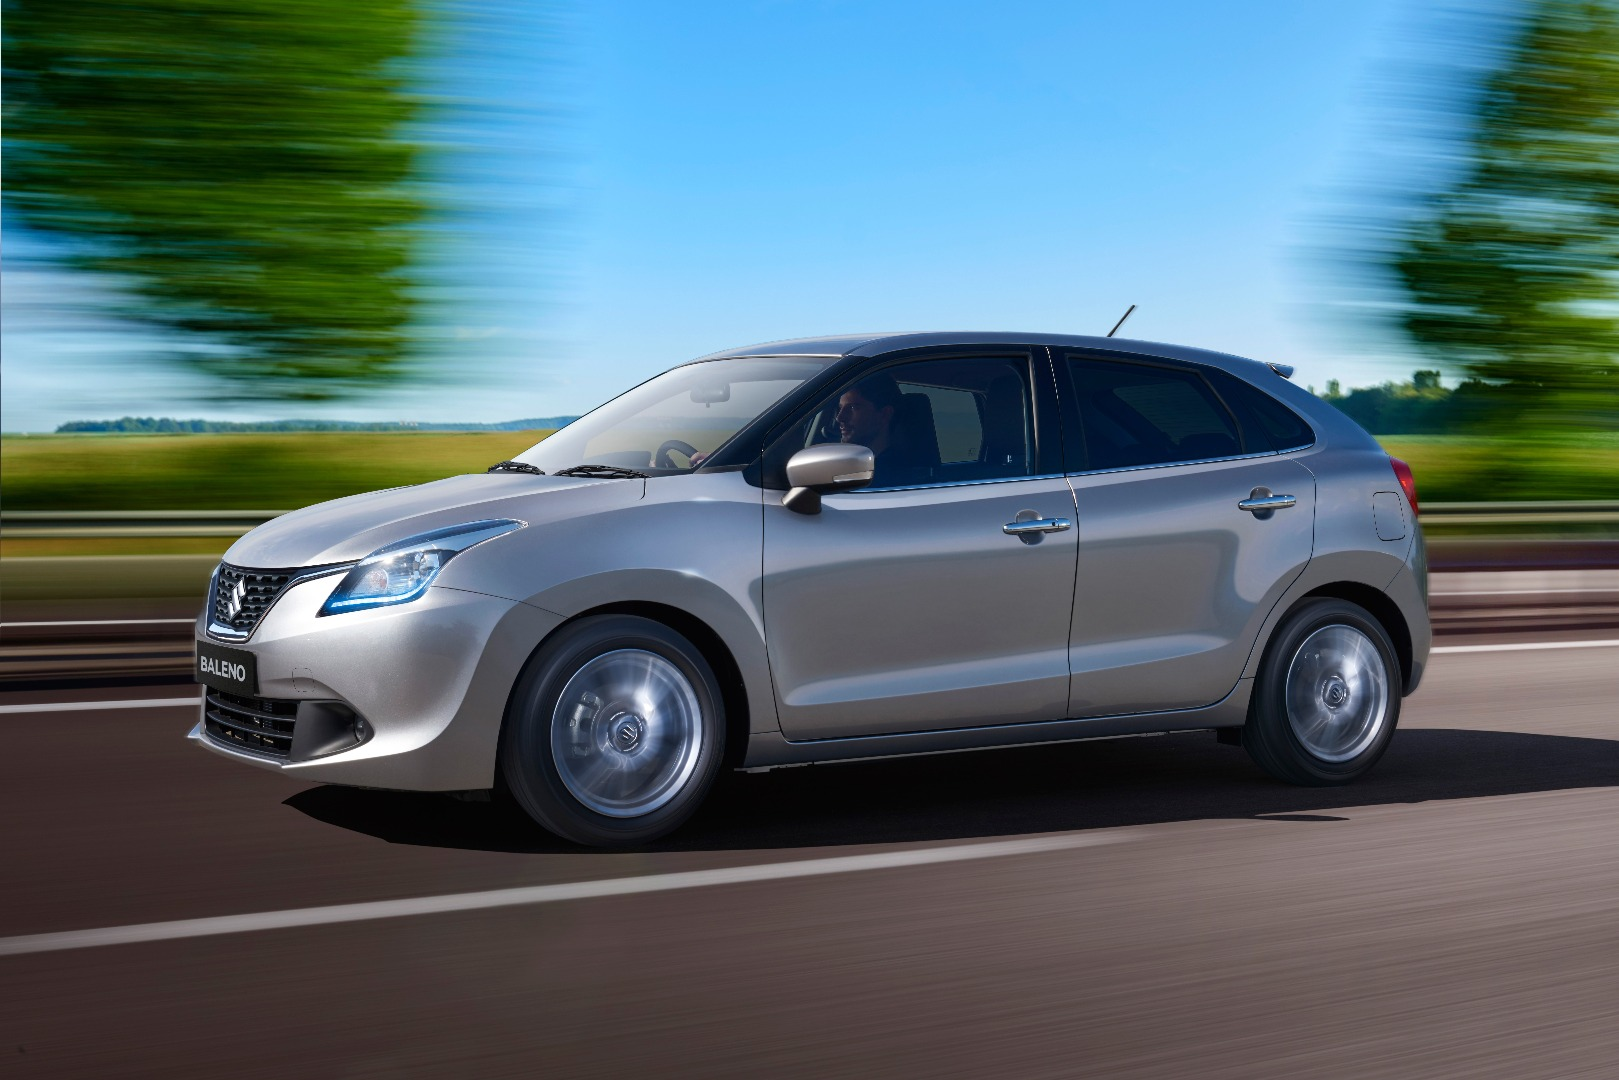 News Suzuki Australia Introduces All New Baleno